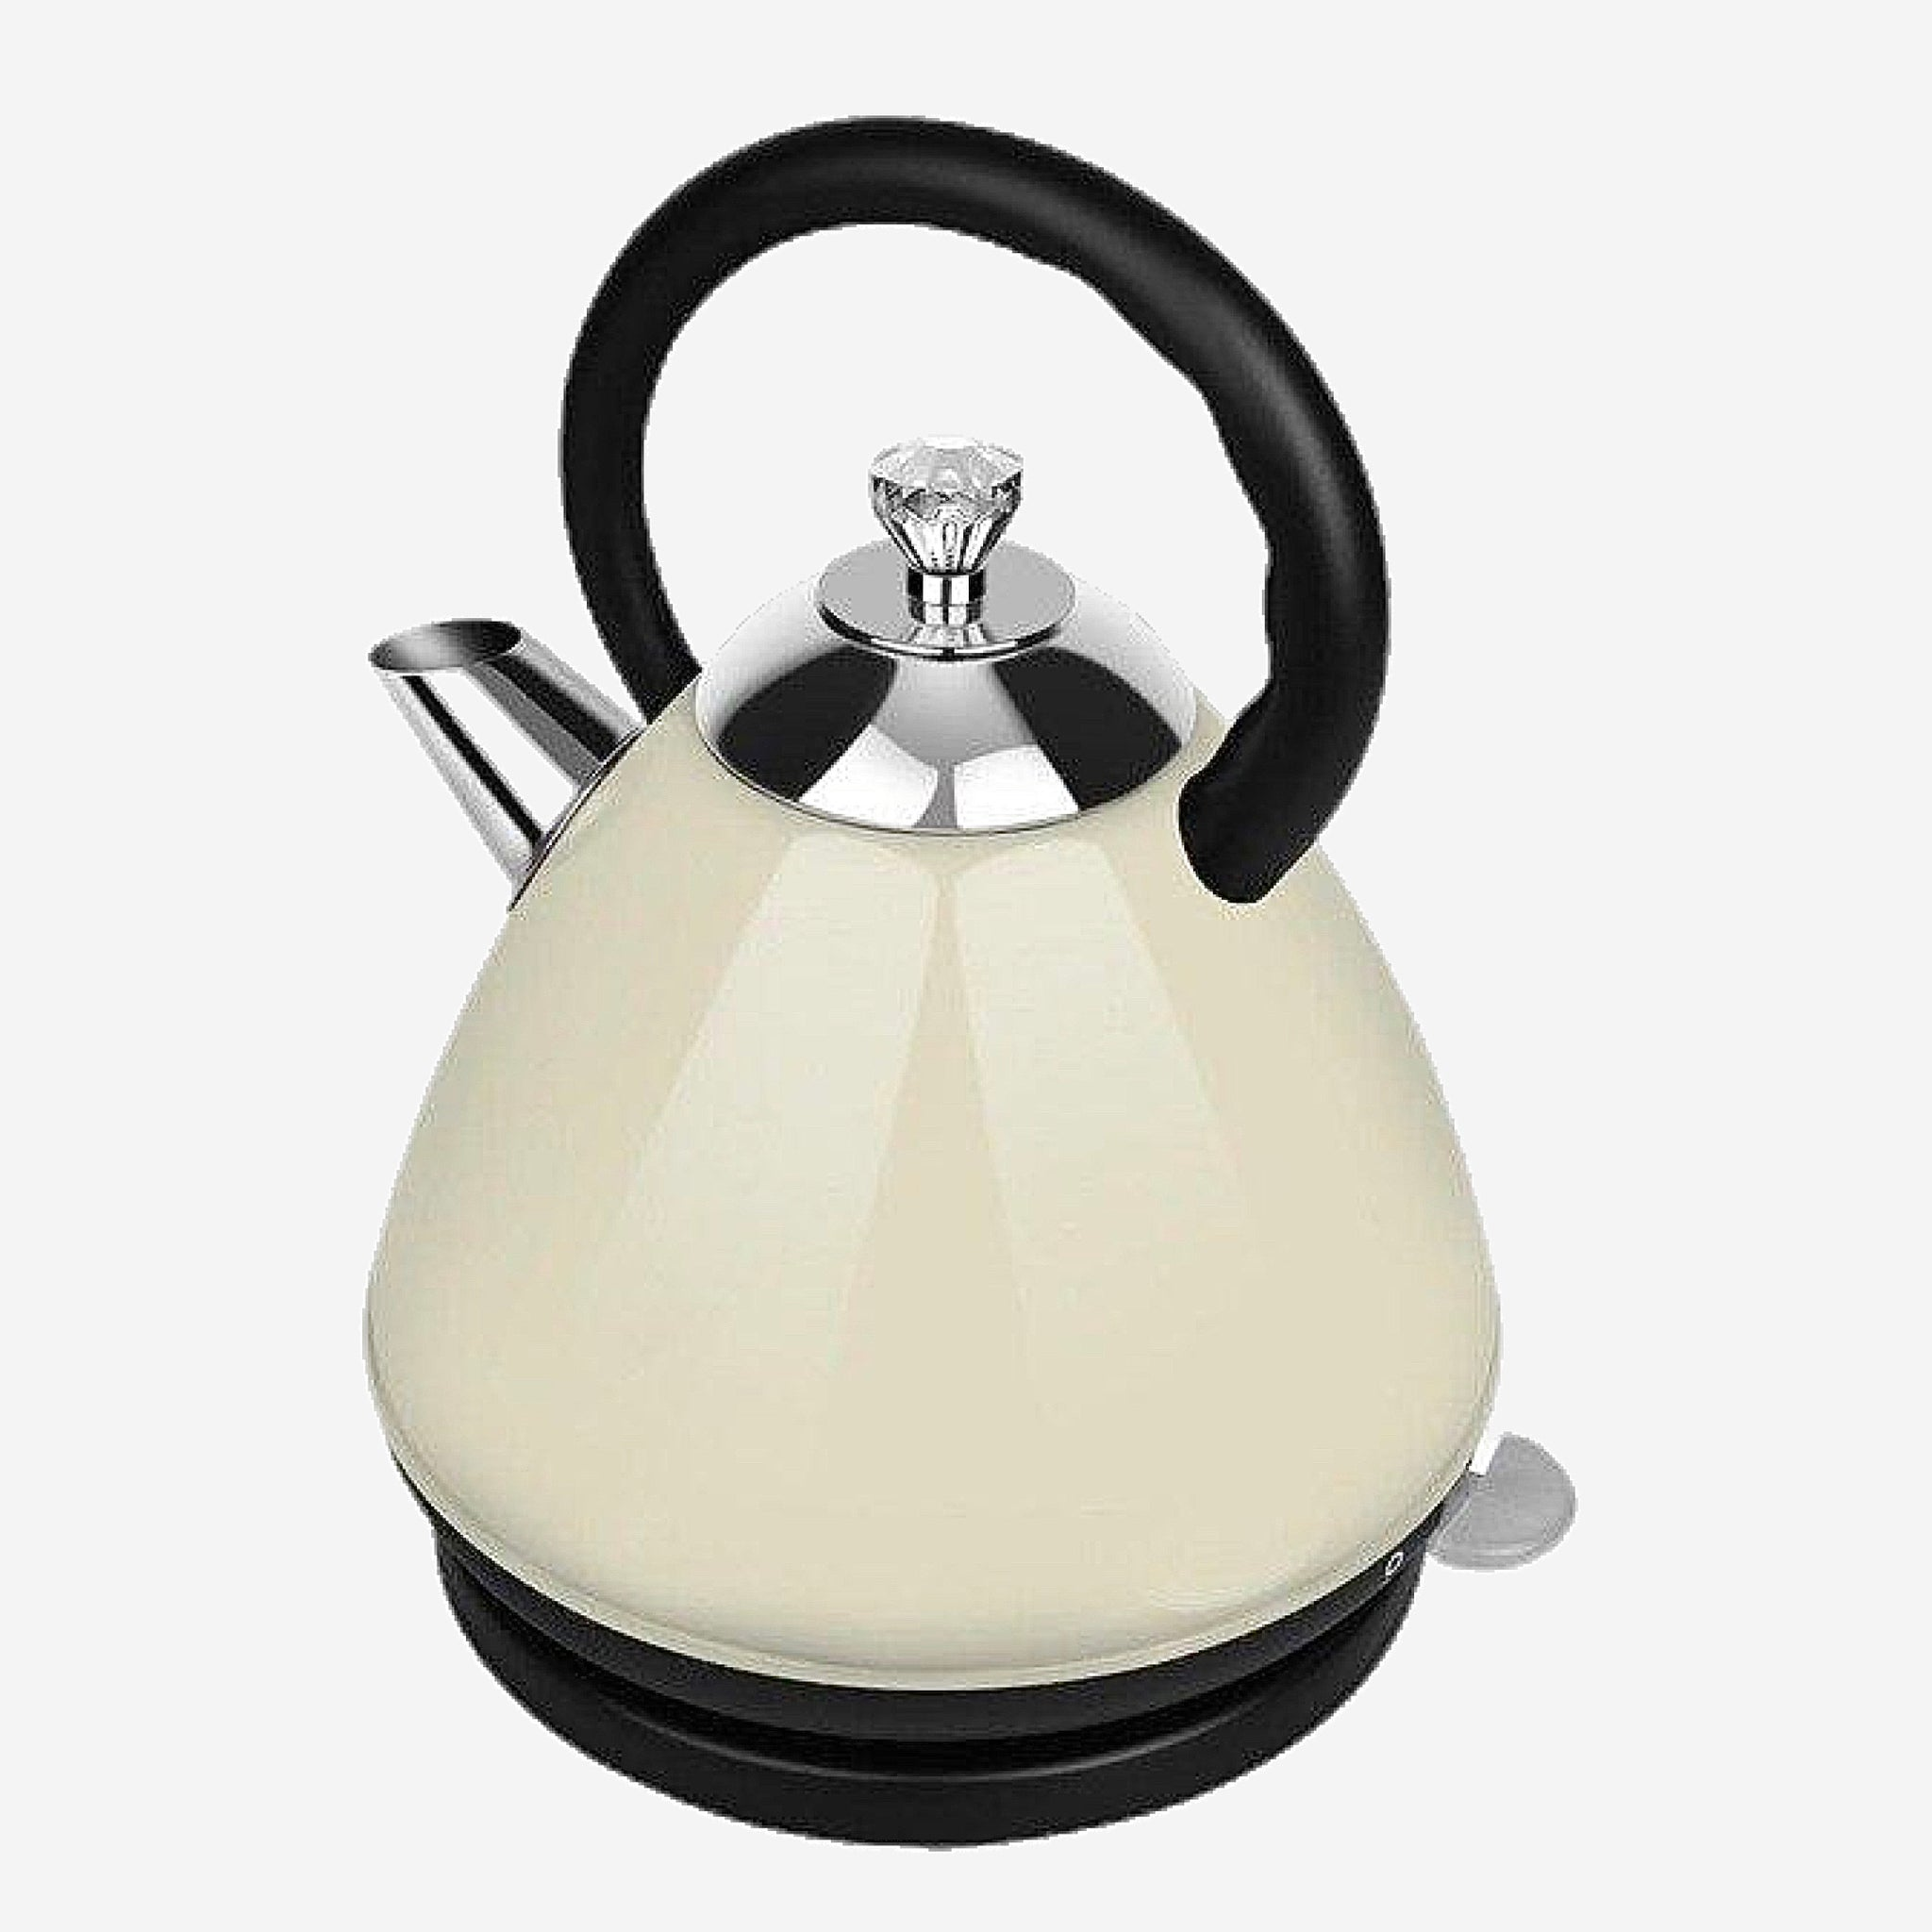 White Stainless Steel Electric Kettle Automatic power supply 2L capacity Household Kitchen Appliance Trending Style